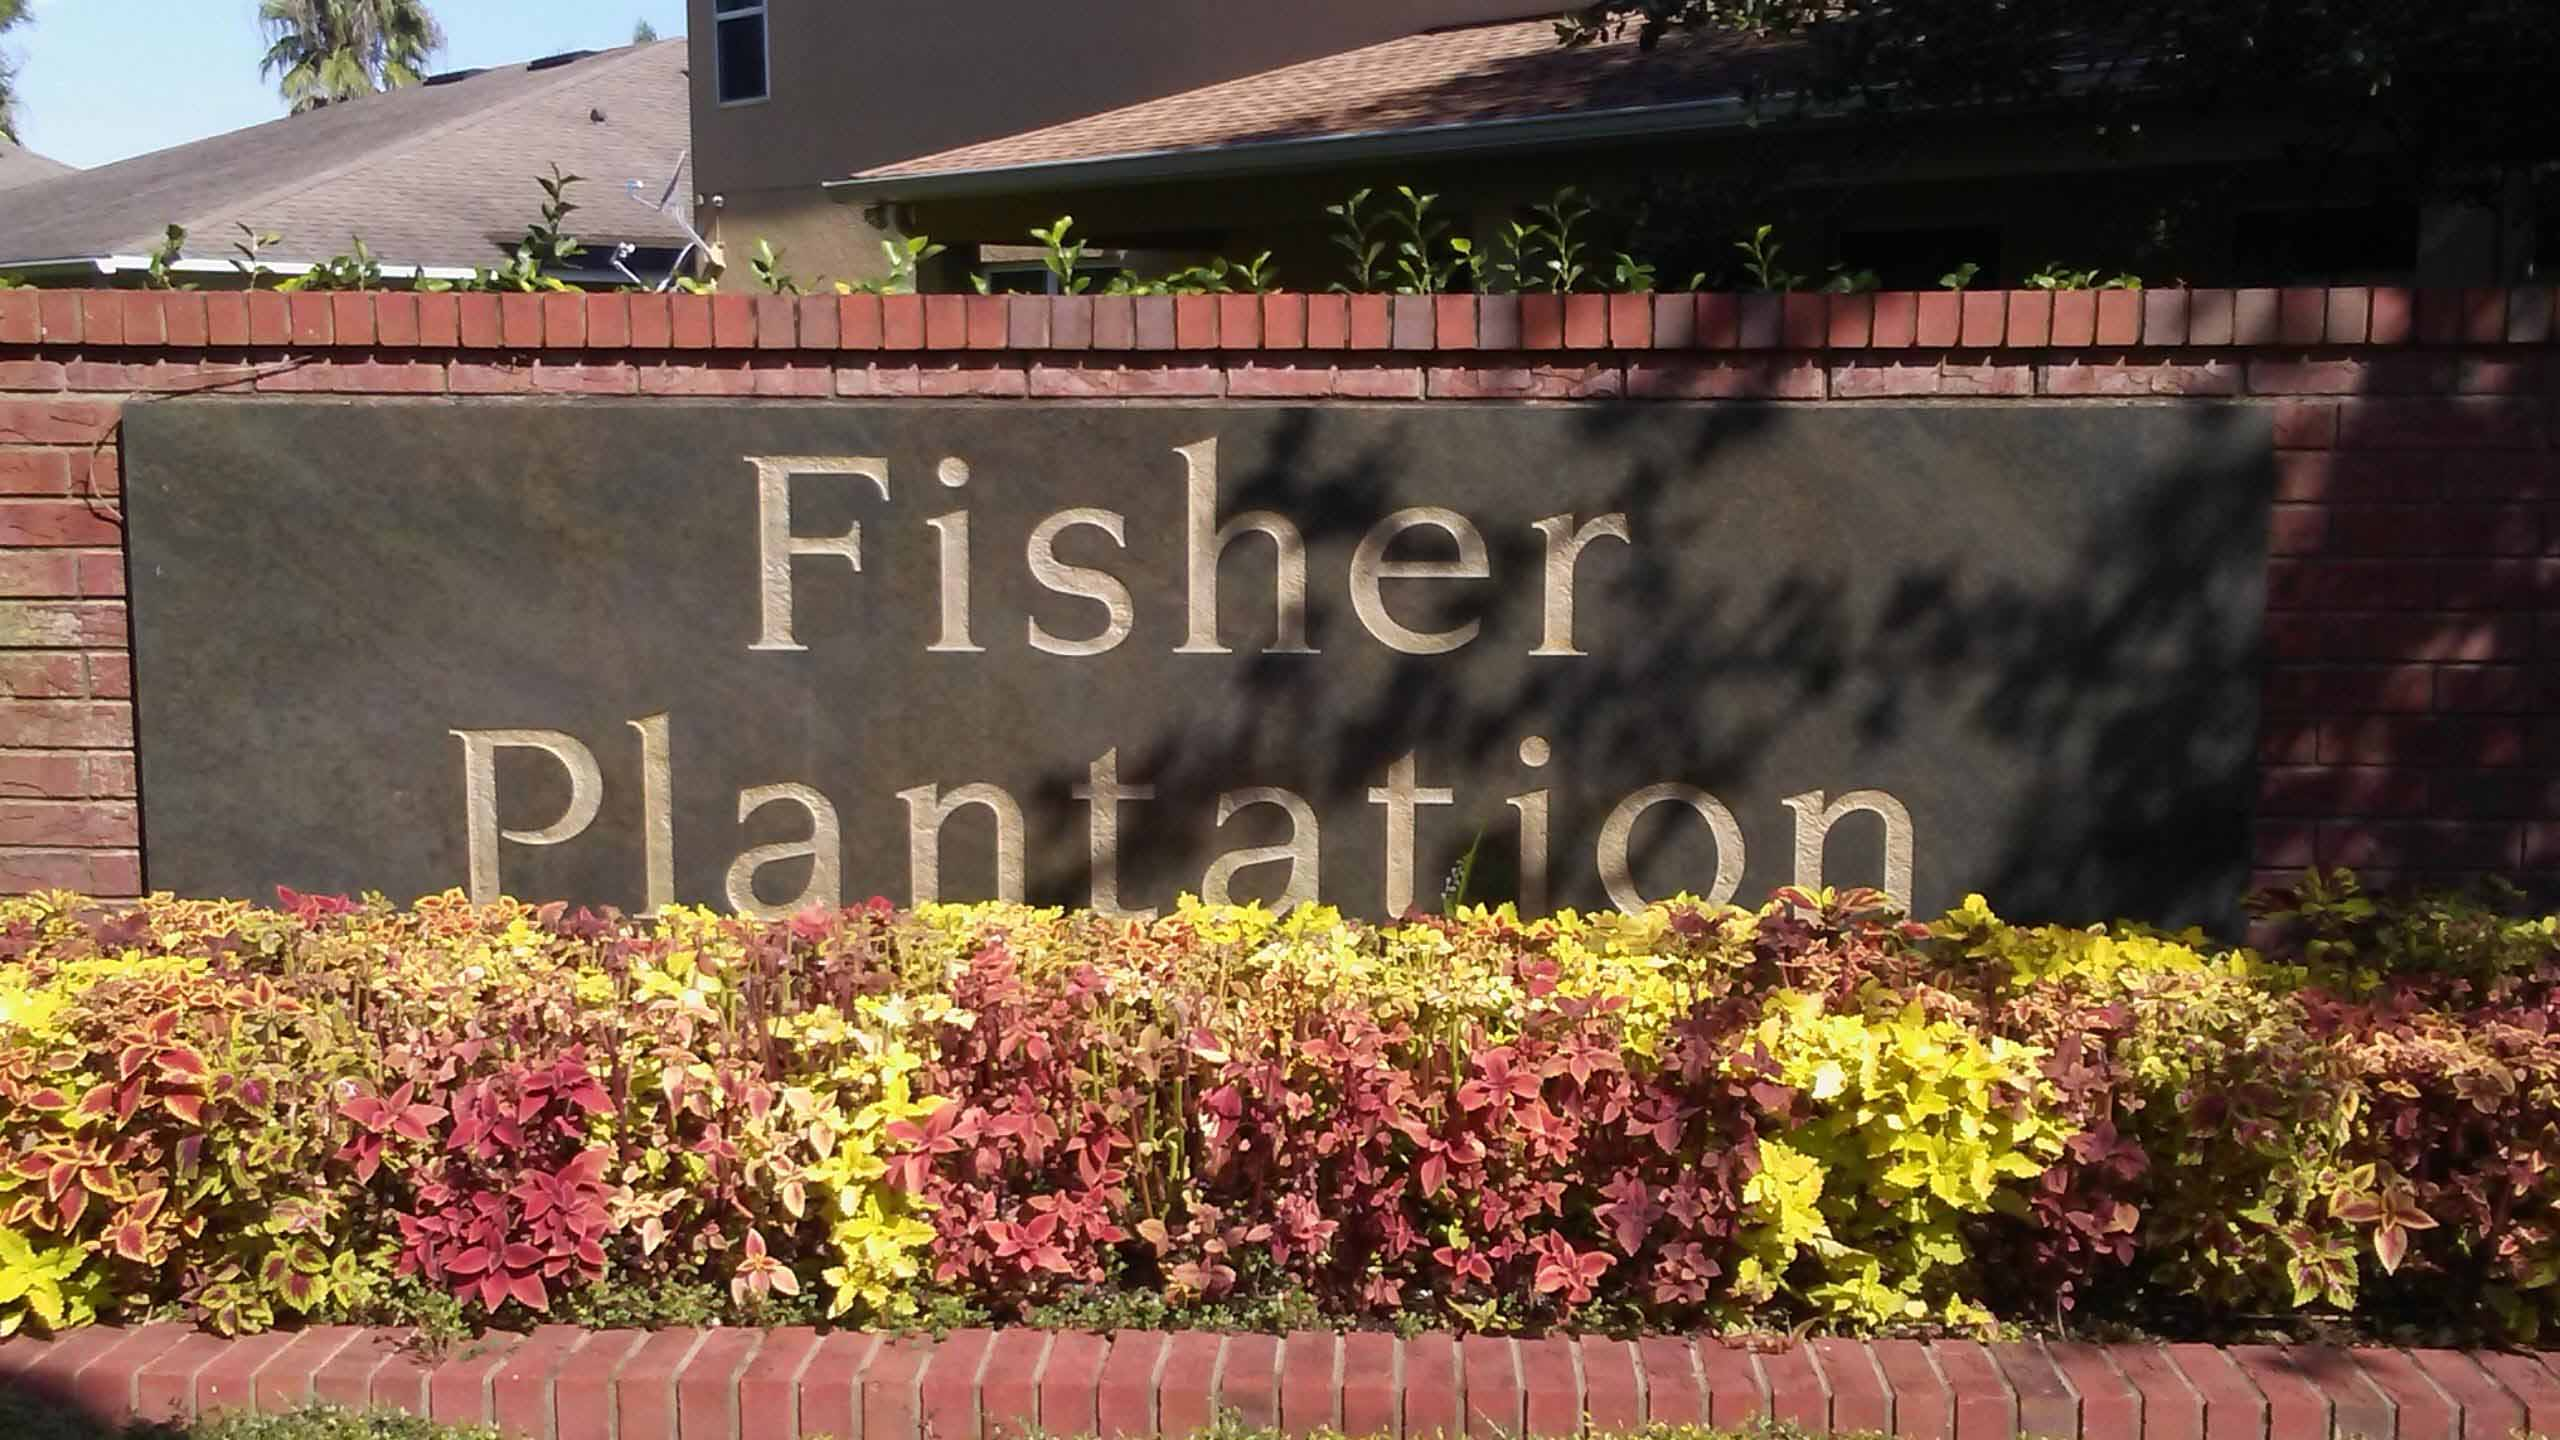 Fisher Plantation, Apopka, Florida 32712